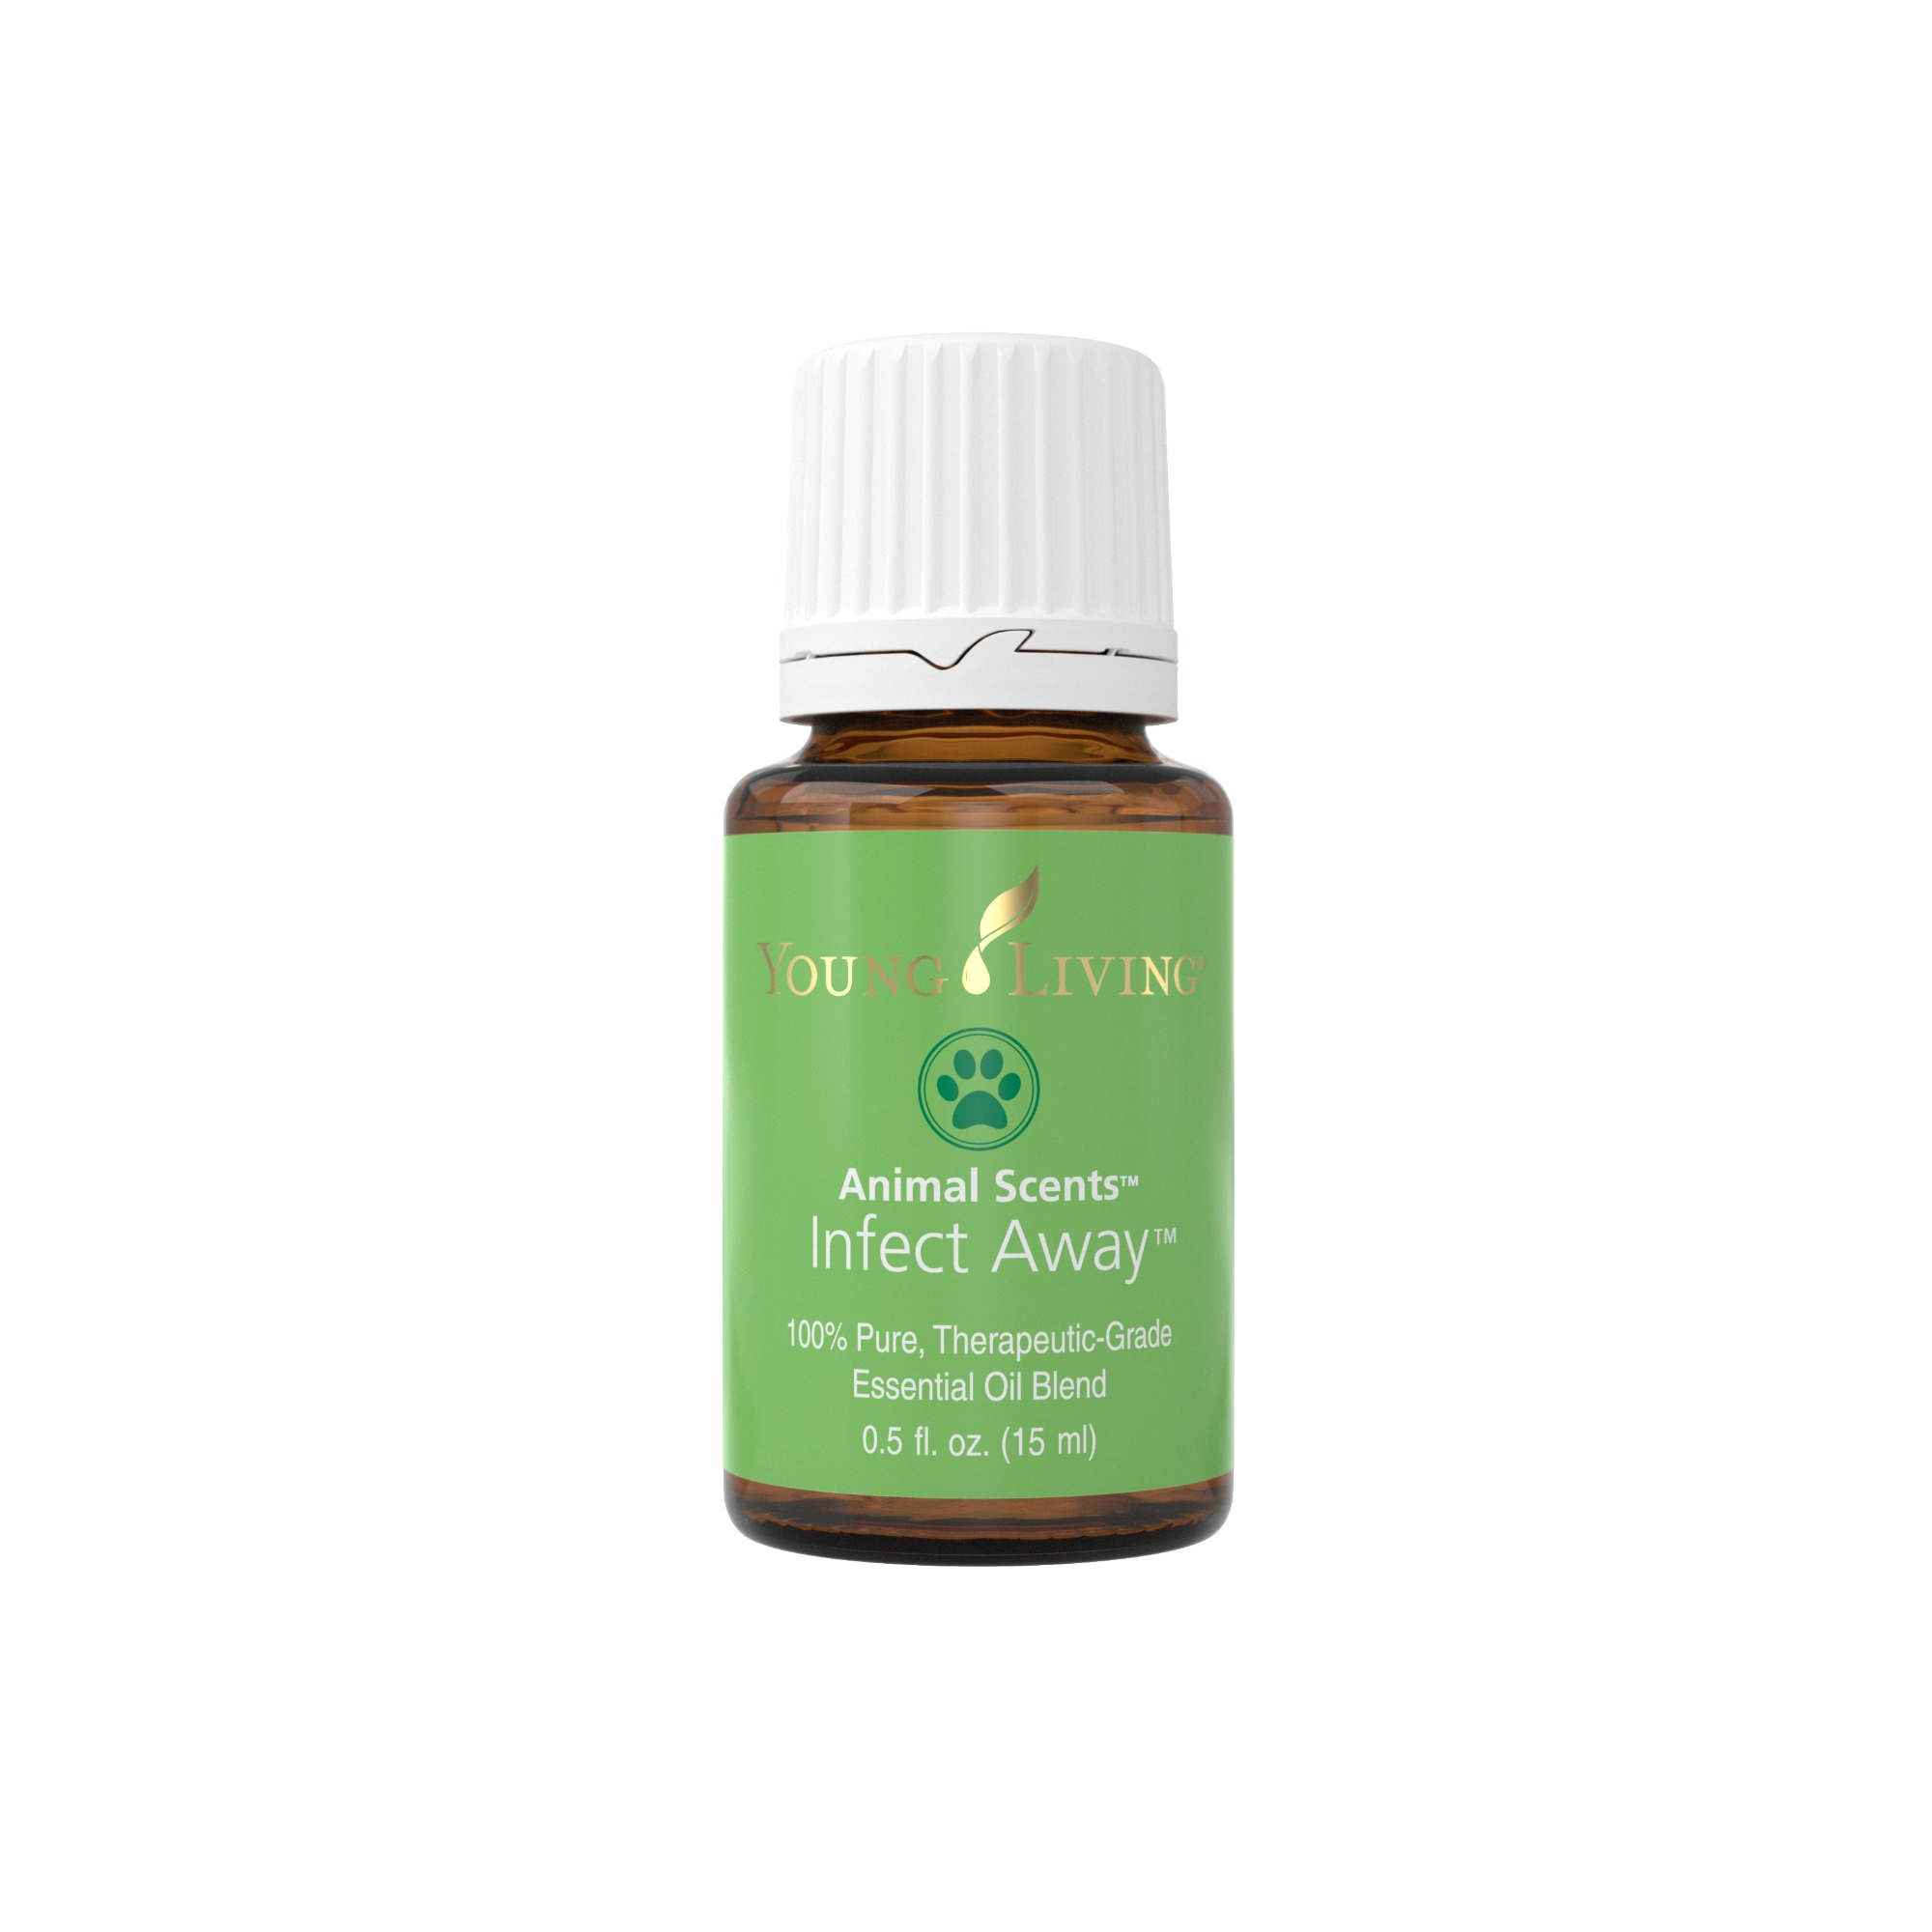 INFECT AWAY ESSENTIAL OIL    This oil's name is self-explanatory. It is commonly used to apply on your pet's skin, supporting healthy skin repair as well as supporting a healthy skin barrier. Being that many pets like to be outside, this essential oil is important to have on hand. Many like to use this oil alongside MendWell and Puriclean. Carefully apply according to the size and species of animal. Dilute more for smaller species. A portion of all proceeds from Animal Scents products goes to support Vital Ground, a nonprofit organization dedicated to protecting the habitat of grizzly bears and other wide-roaming wildlife.   Click here   to learn more about this product.